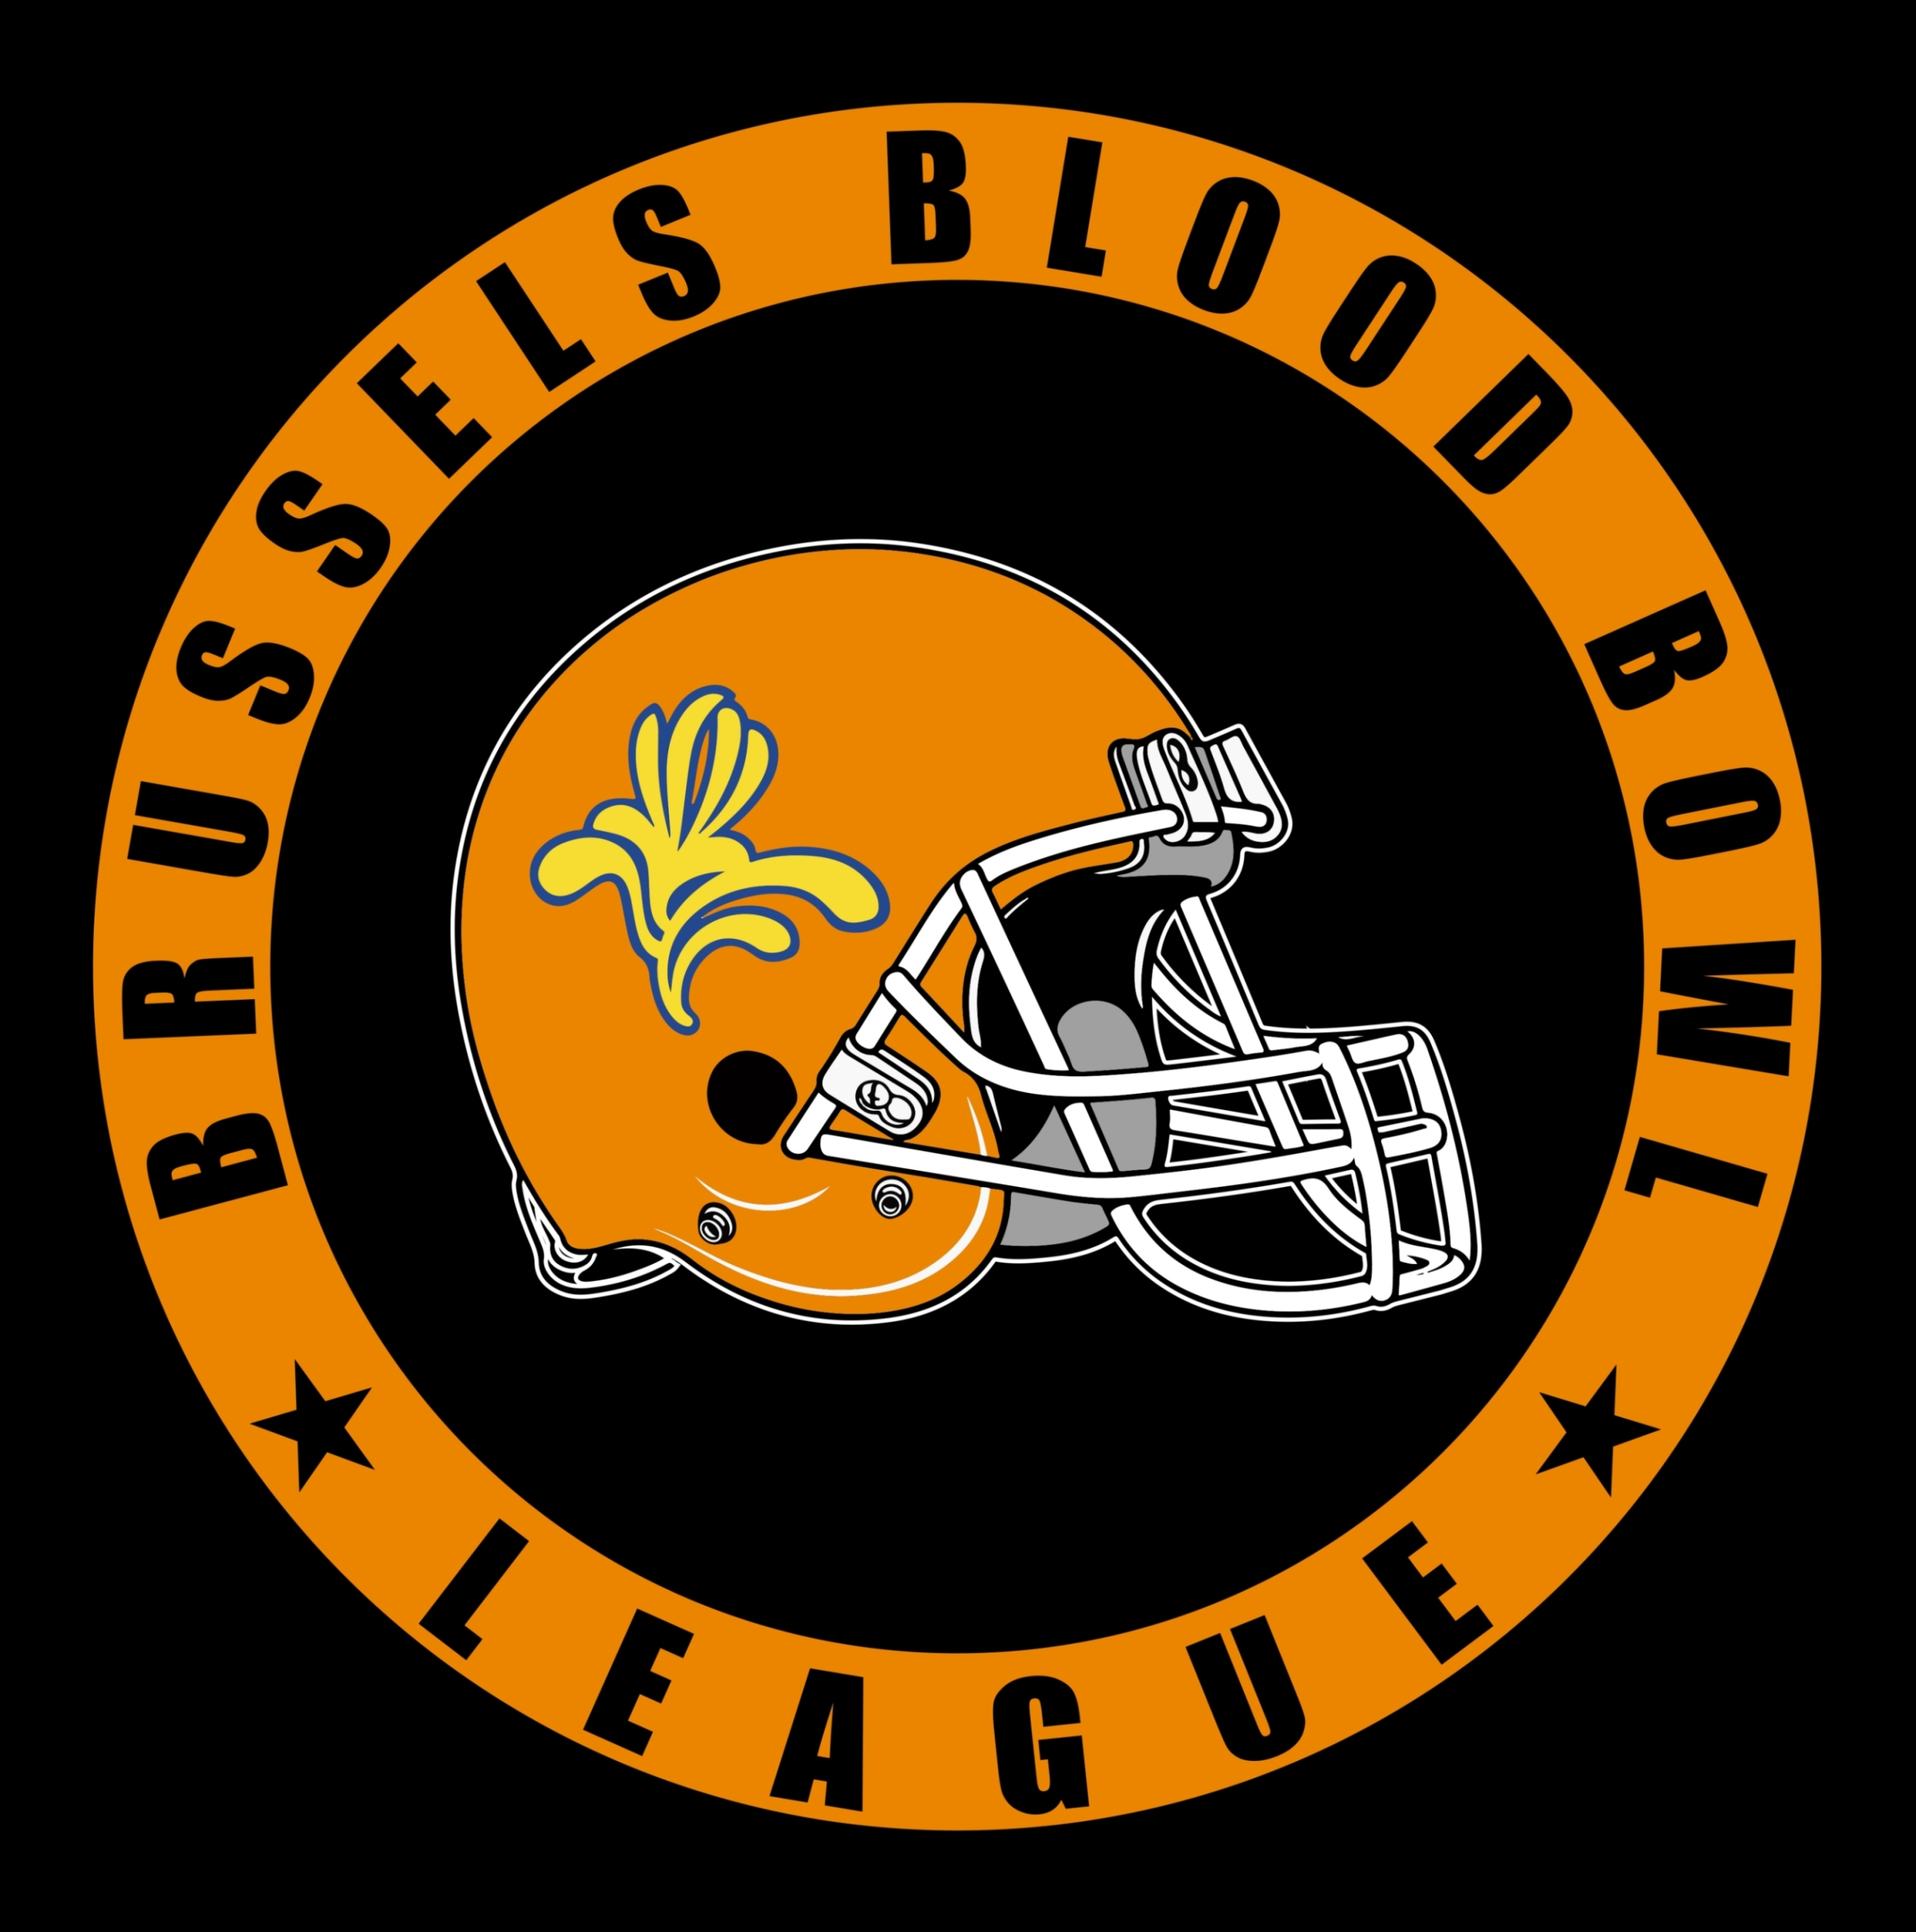 blood bowl brussels Index du Forum